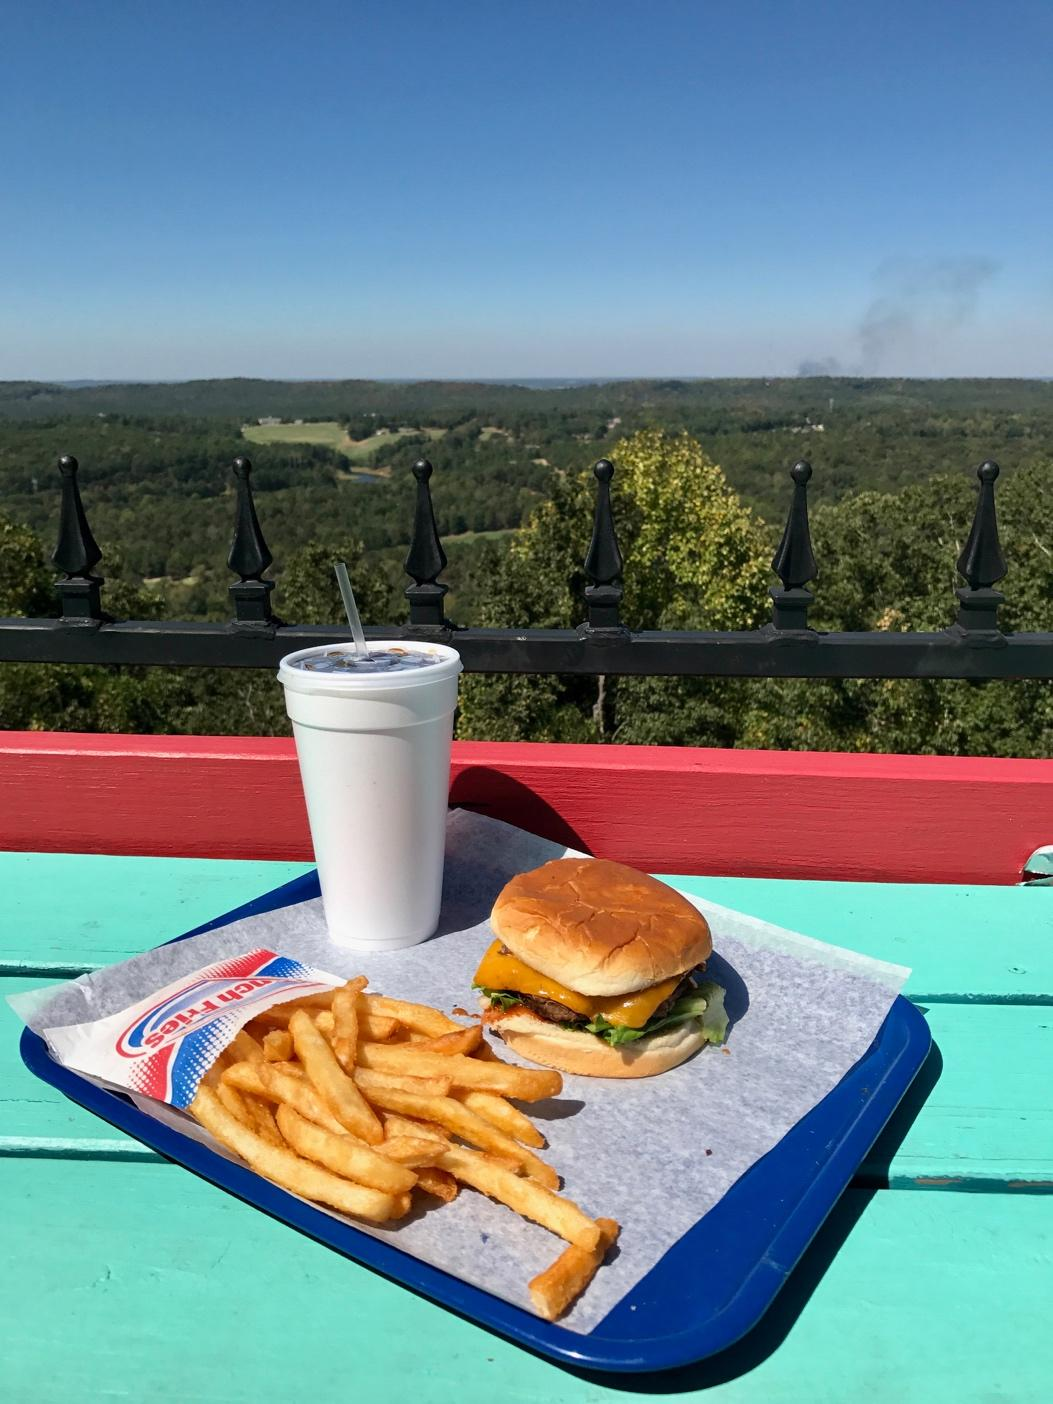 The view provided at Tip Top Grill inspires both the name and returning customers. Photo by Gavin Gilliland